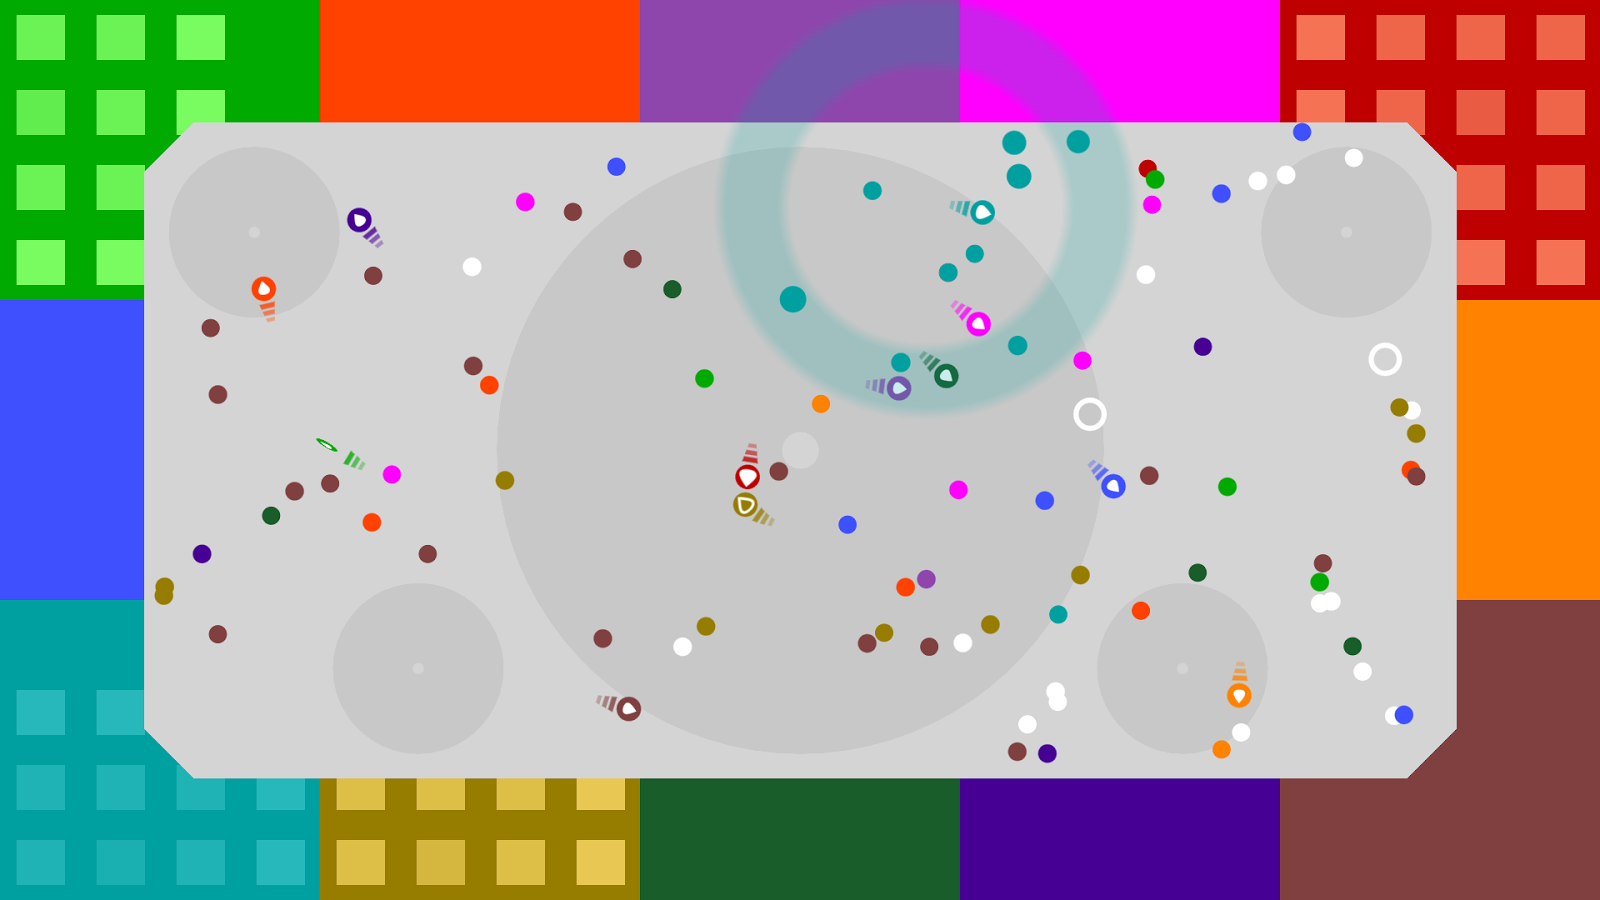 12 orbits ◦ 2,3,4...12 players- screenshot